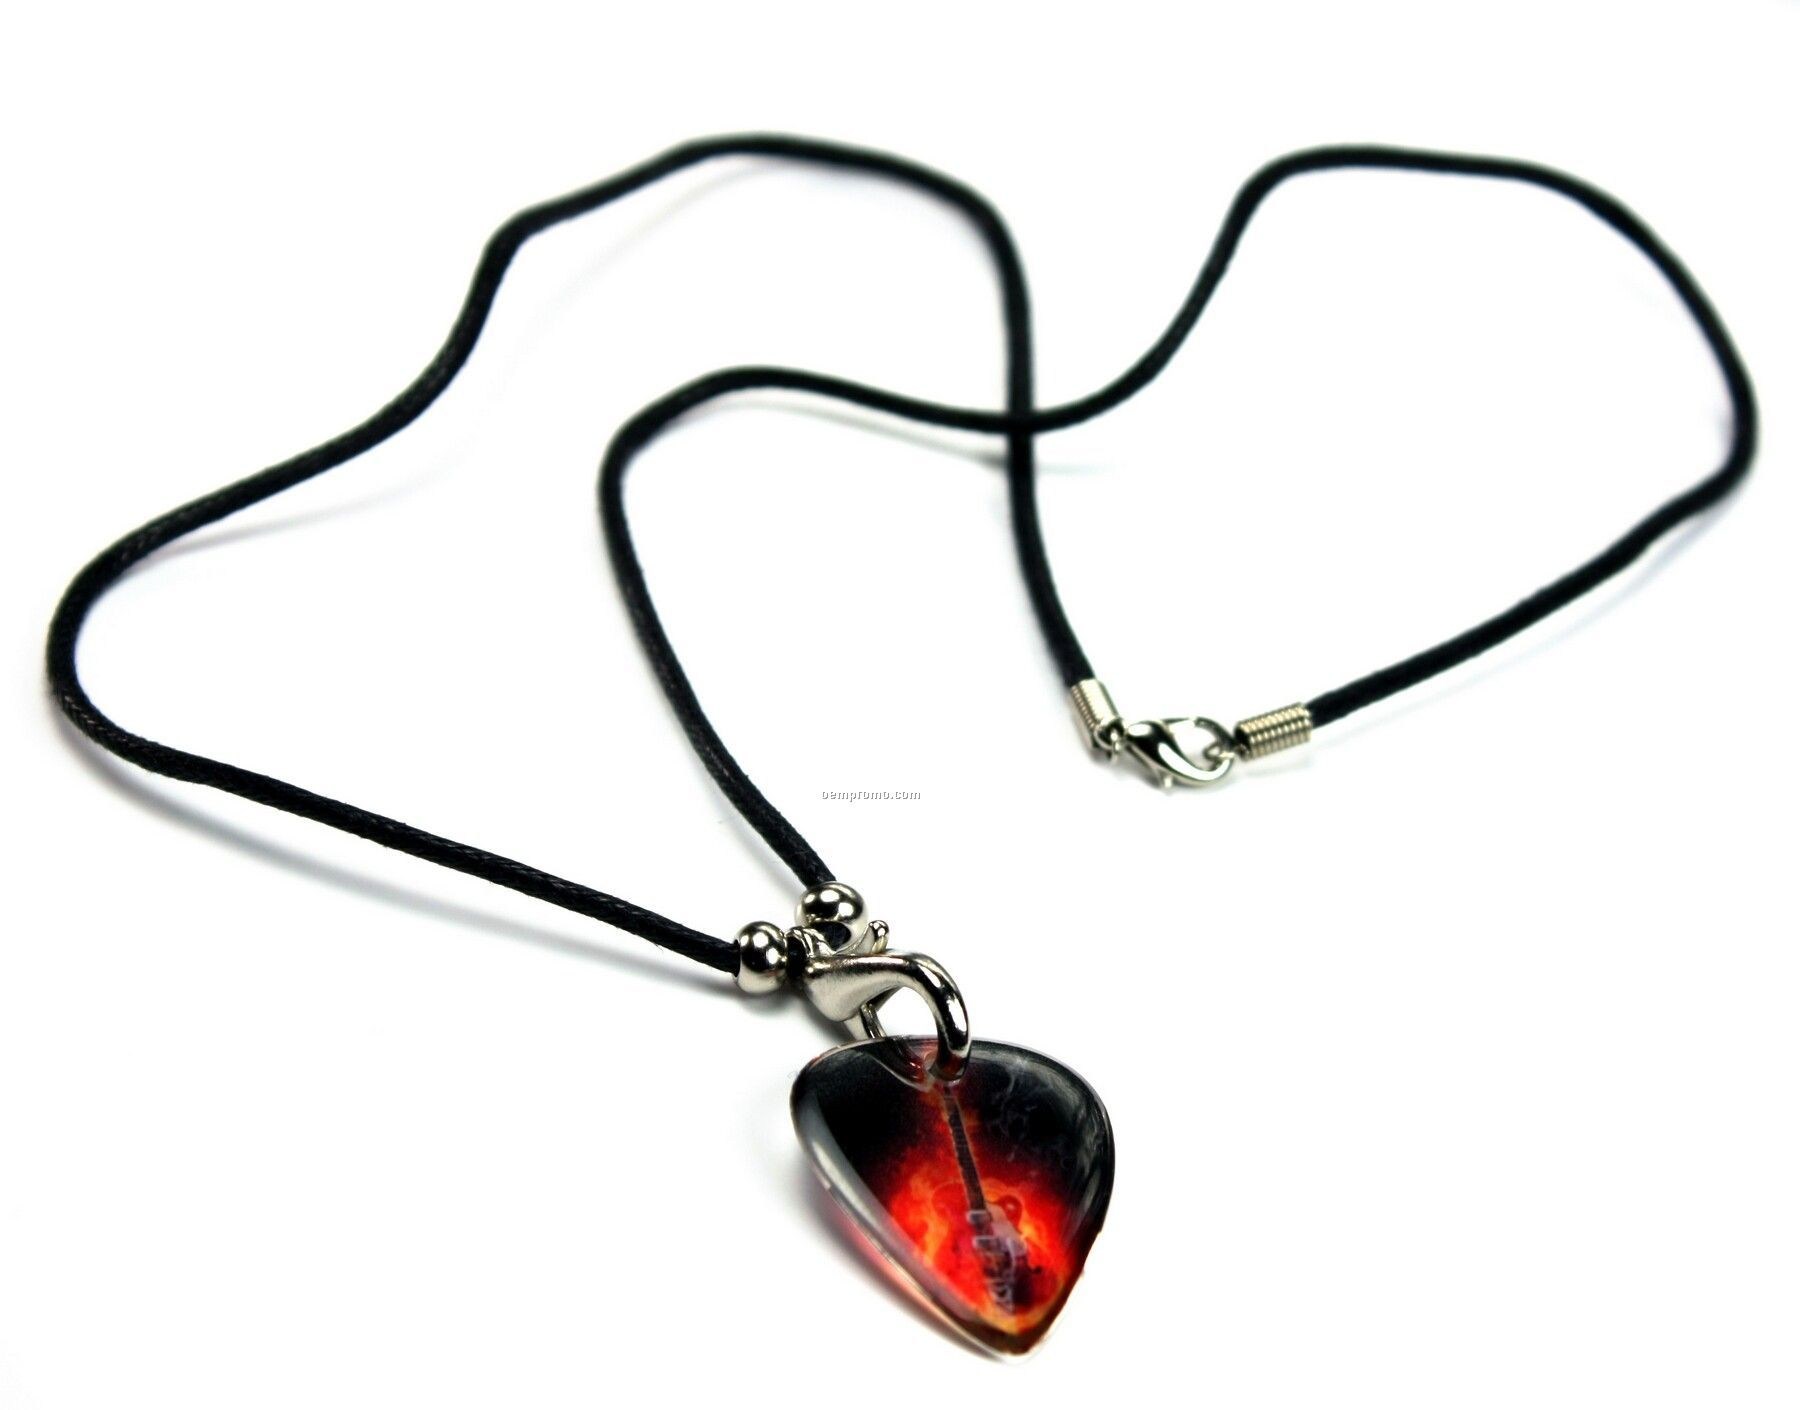 Standard Pick Quick Release Necklace